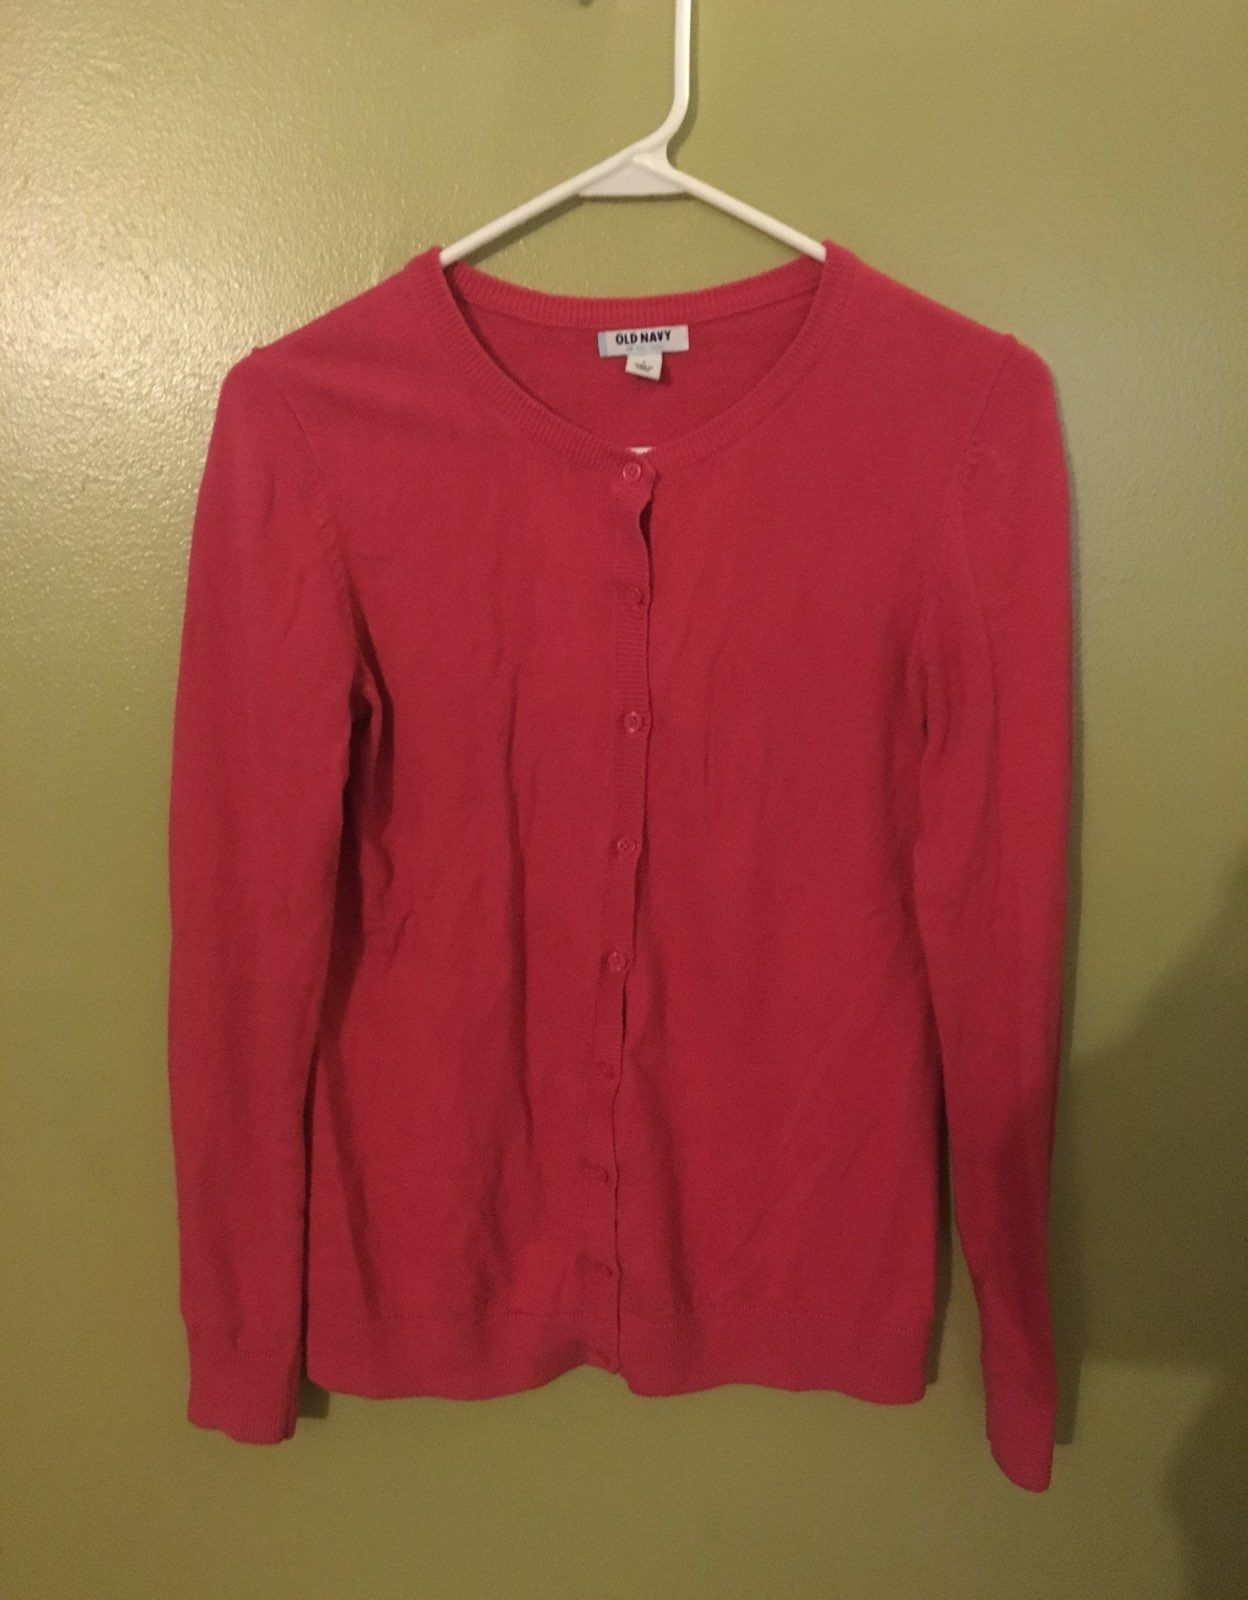 Free Ship. Pink Sweater - Mercari: BUY & SELL THINGS YOU LOVE